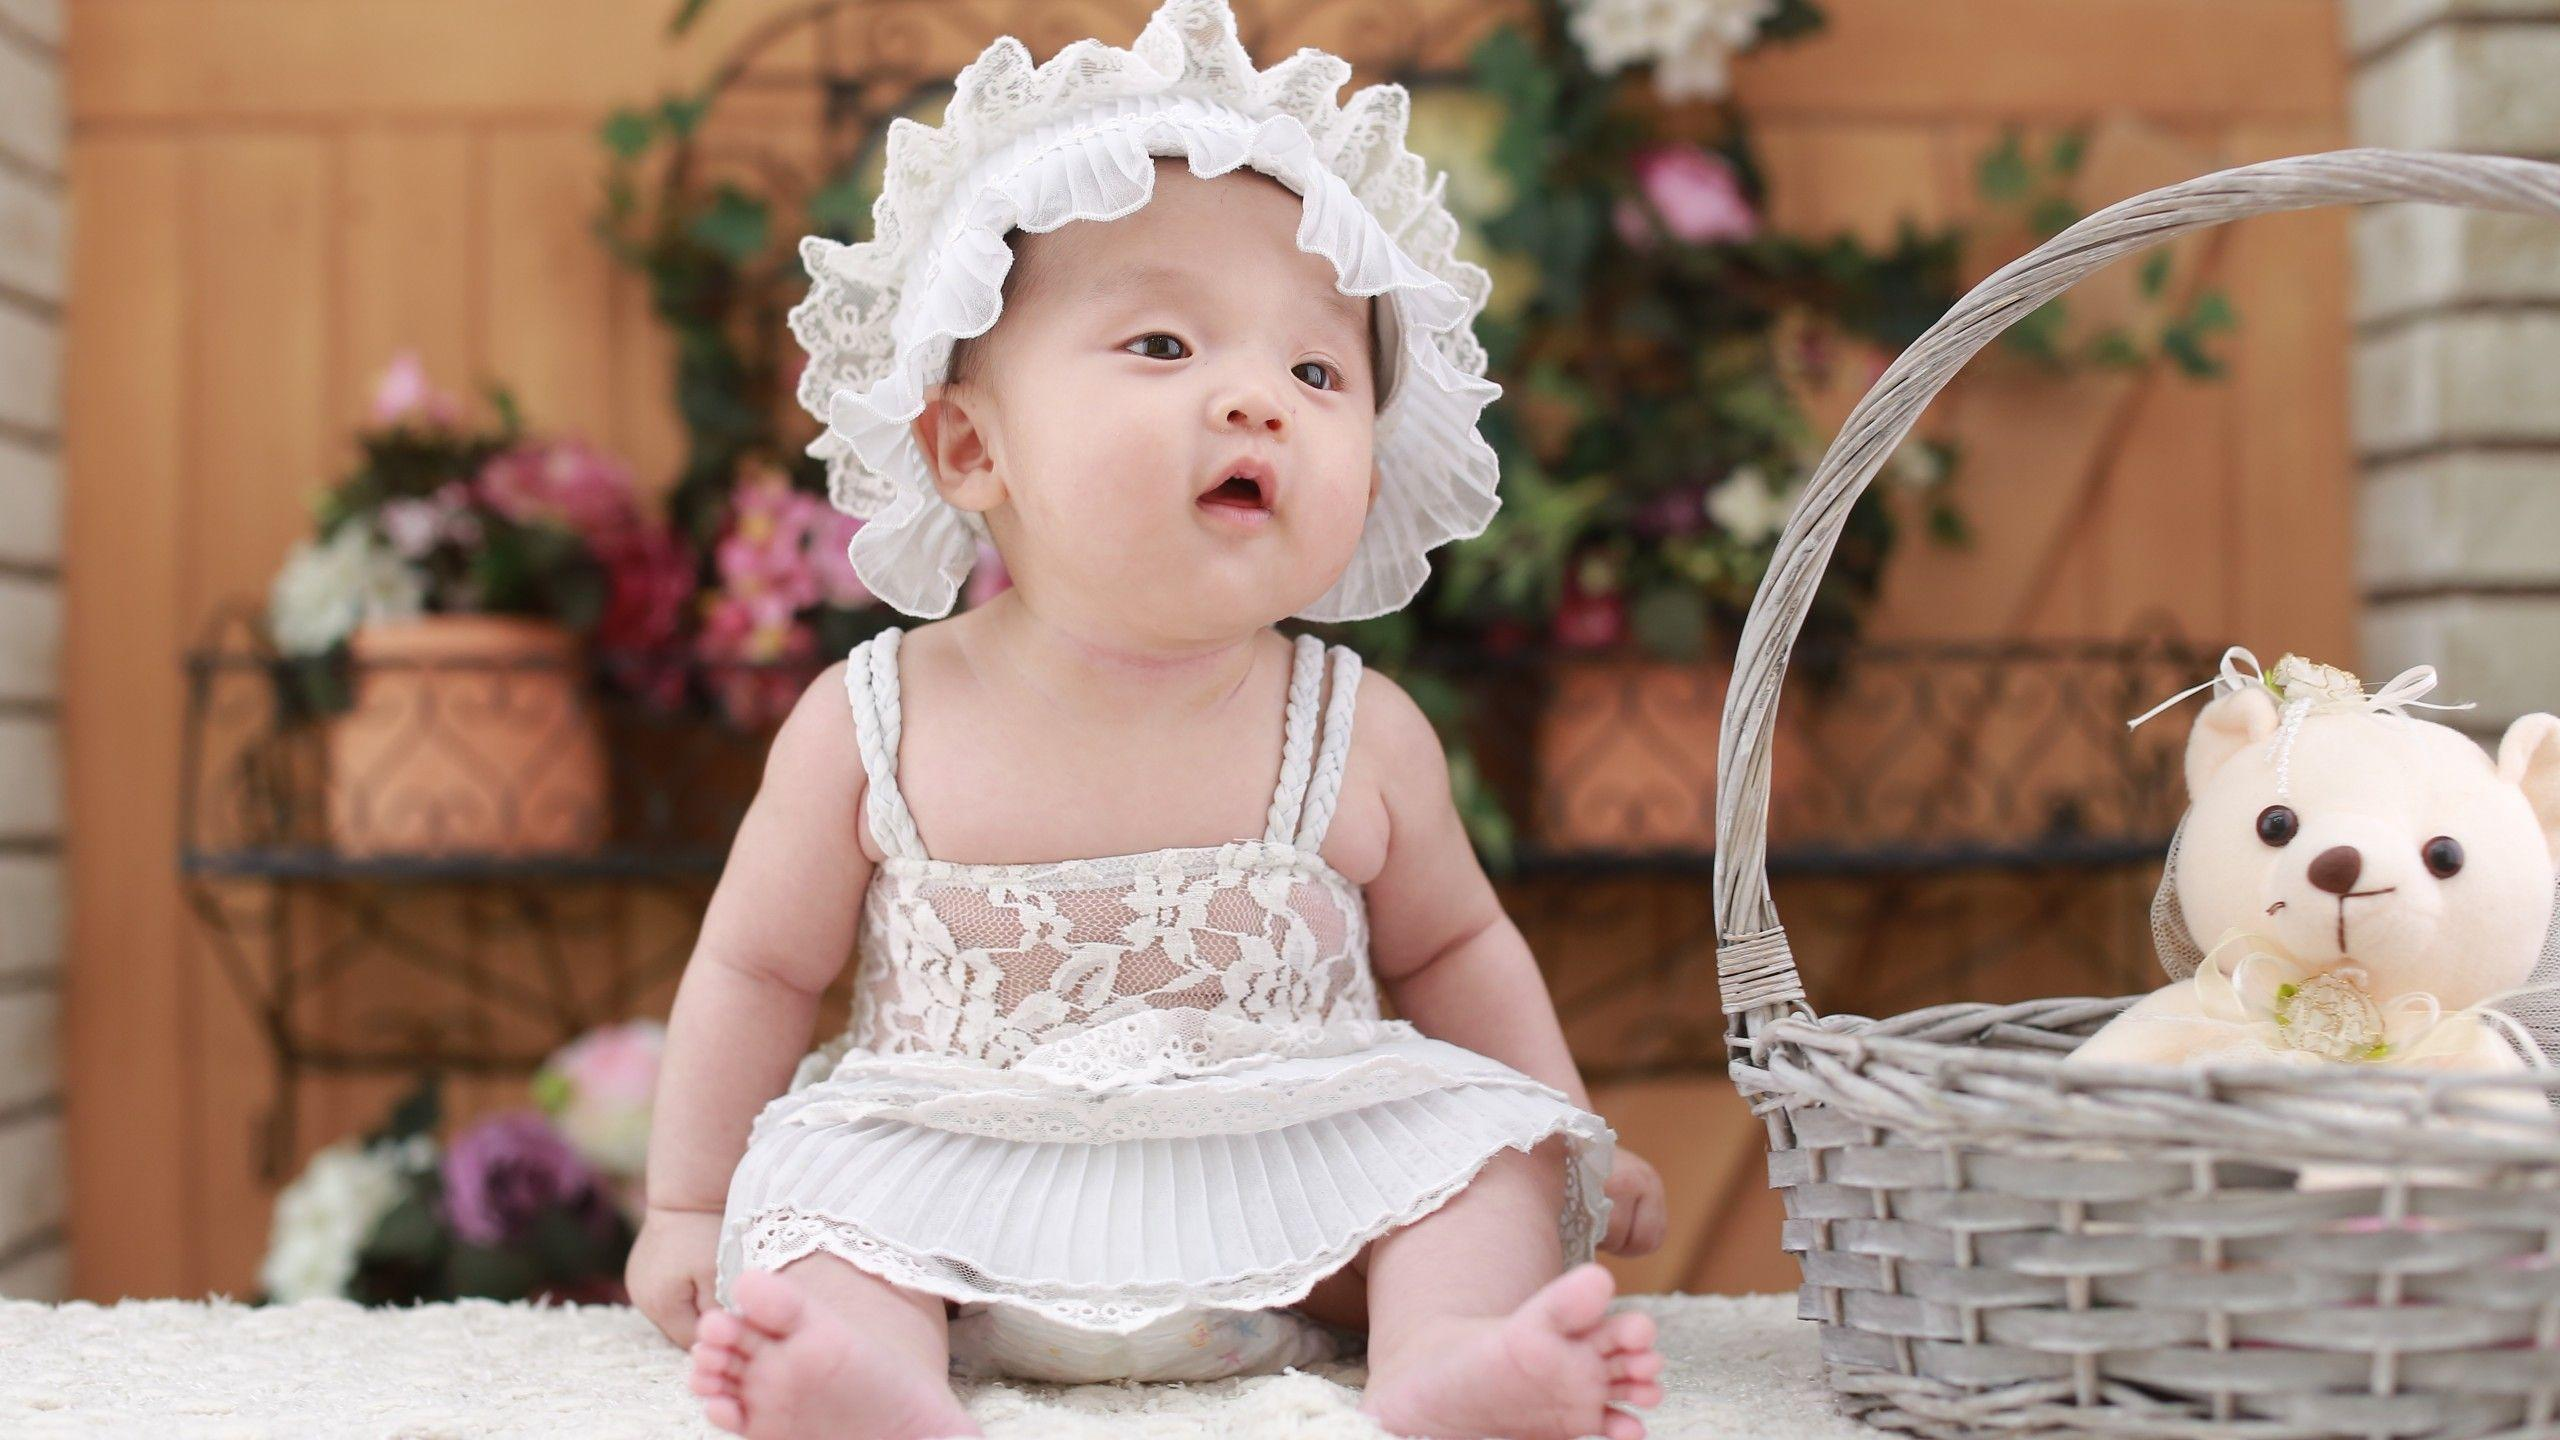 Cute Baby Girls Wallpapers Wallpaper Cave